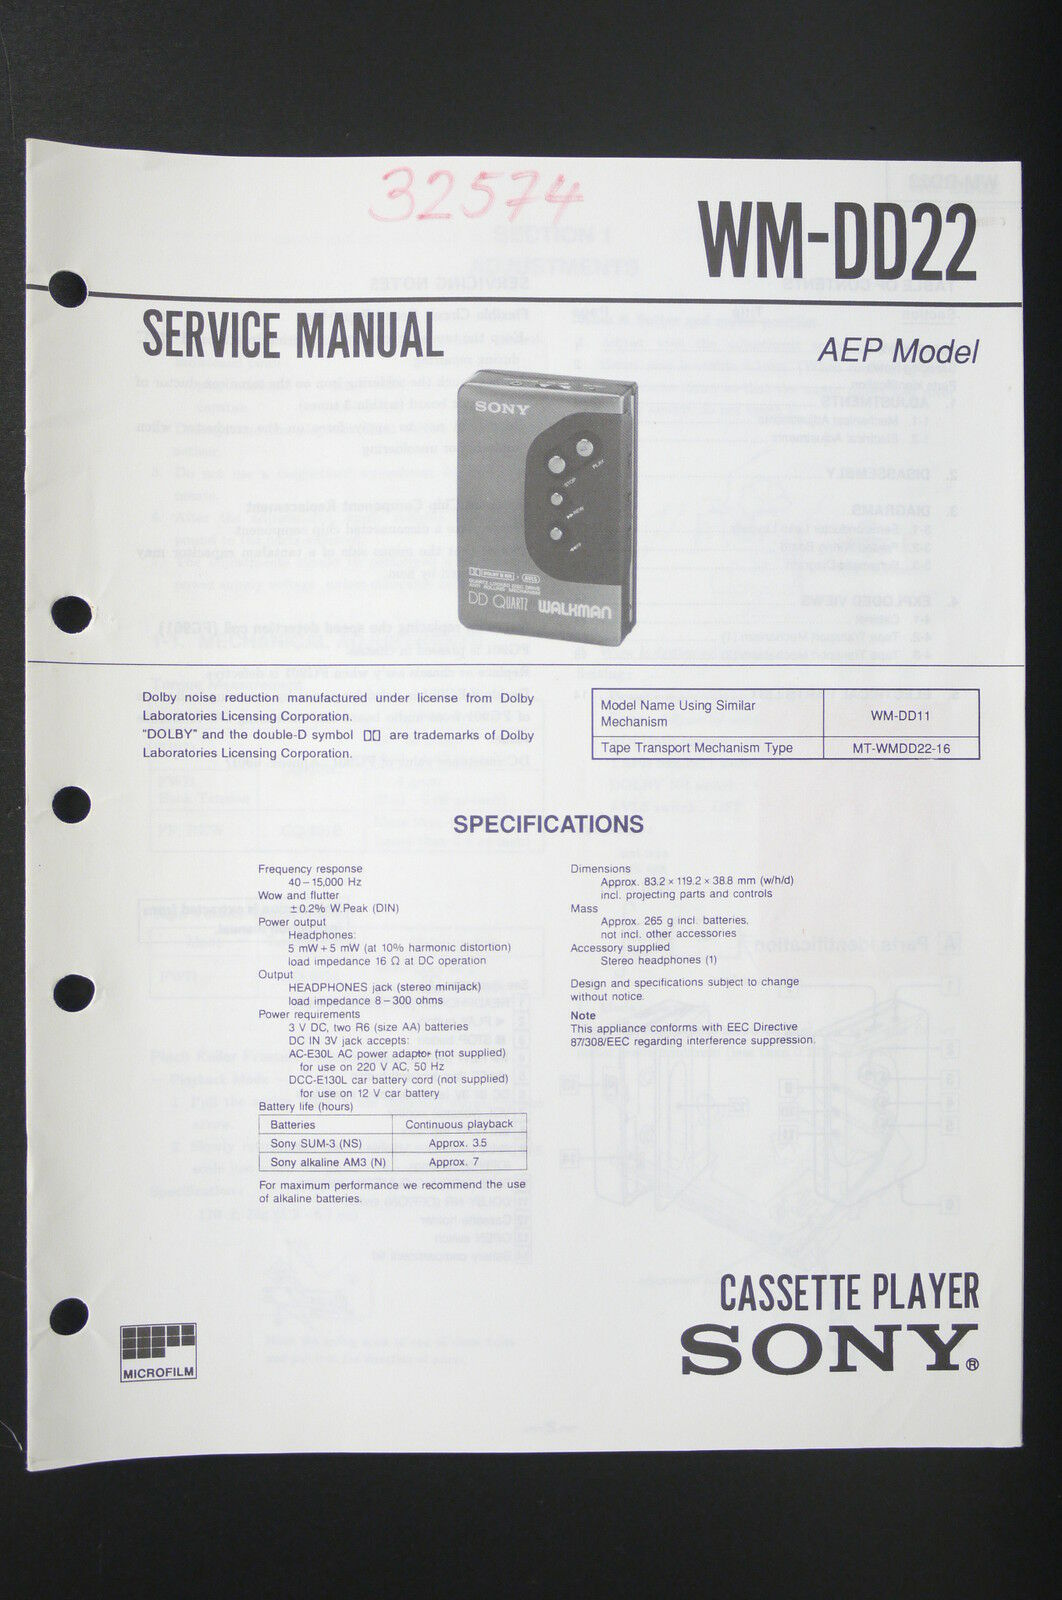 Sony Wm Dd22 Walkman Cassette Player Service Manual Wiring Diagram 1 Of 2only 2 Available